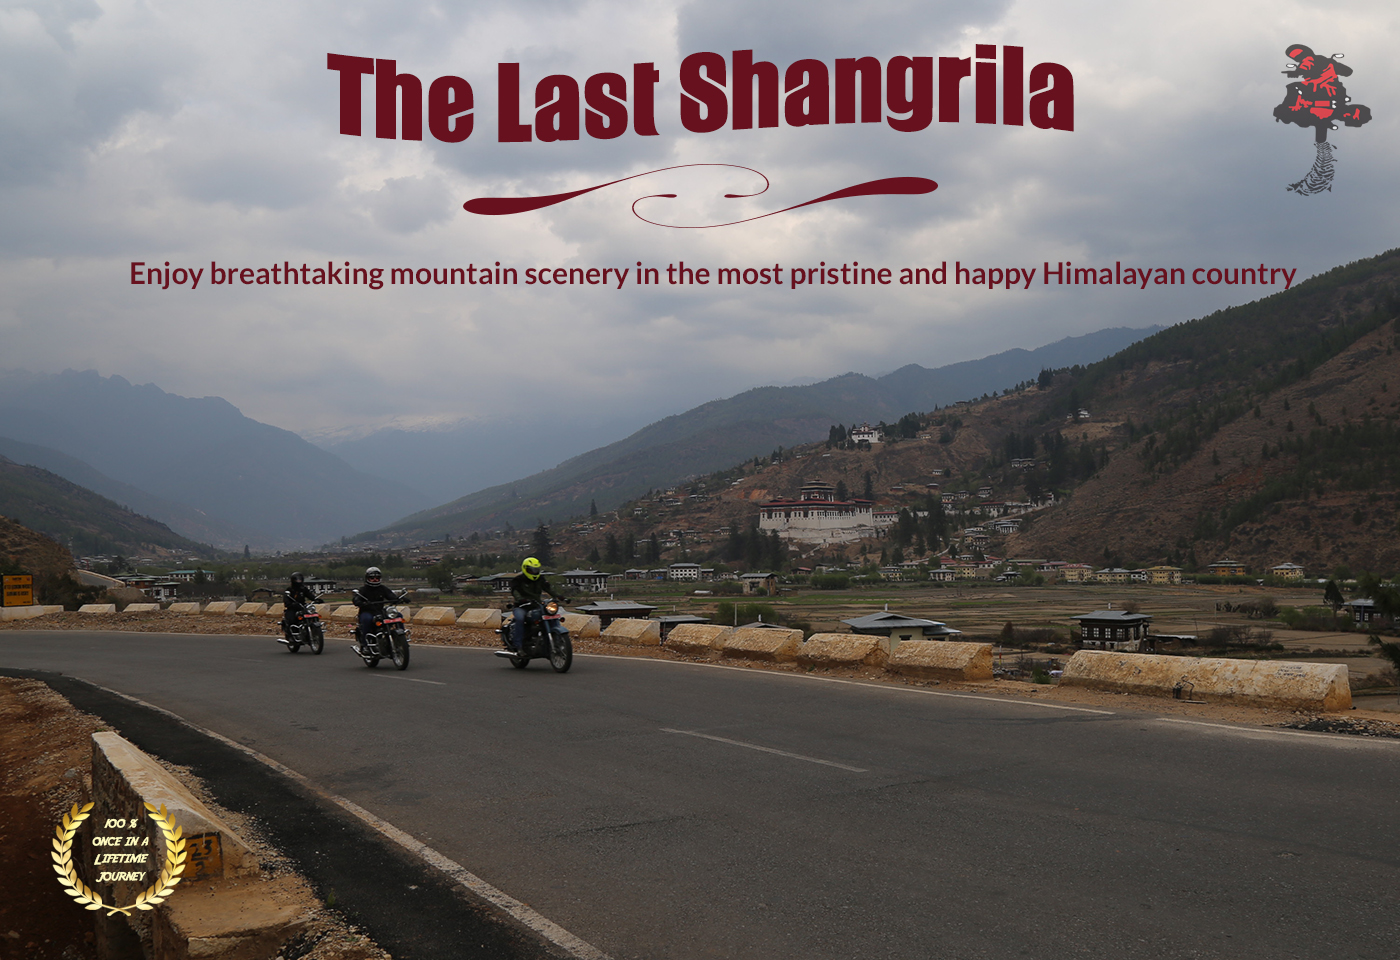 The Last Shangri La